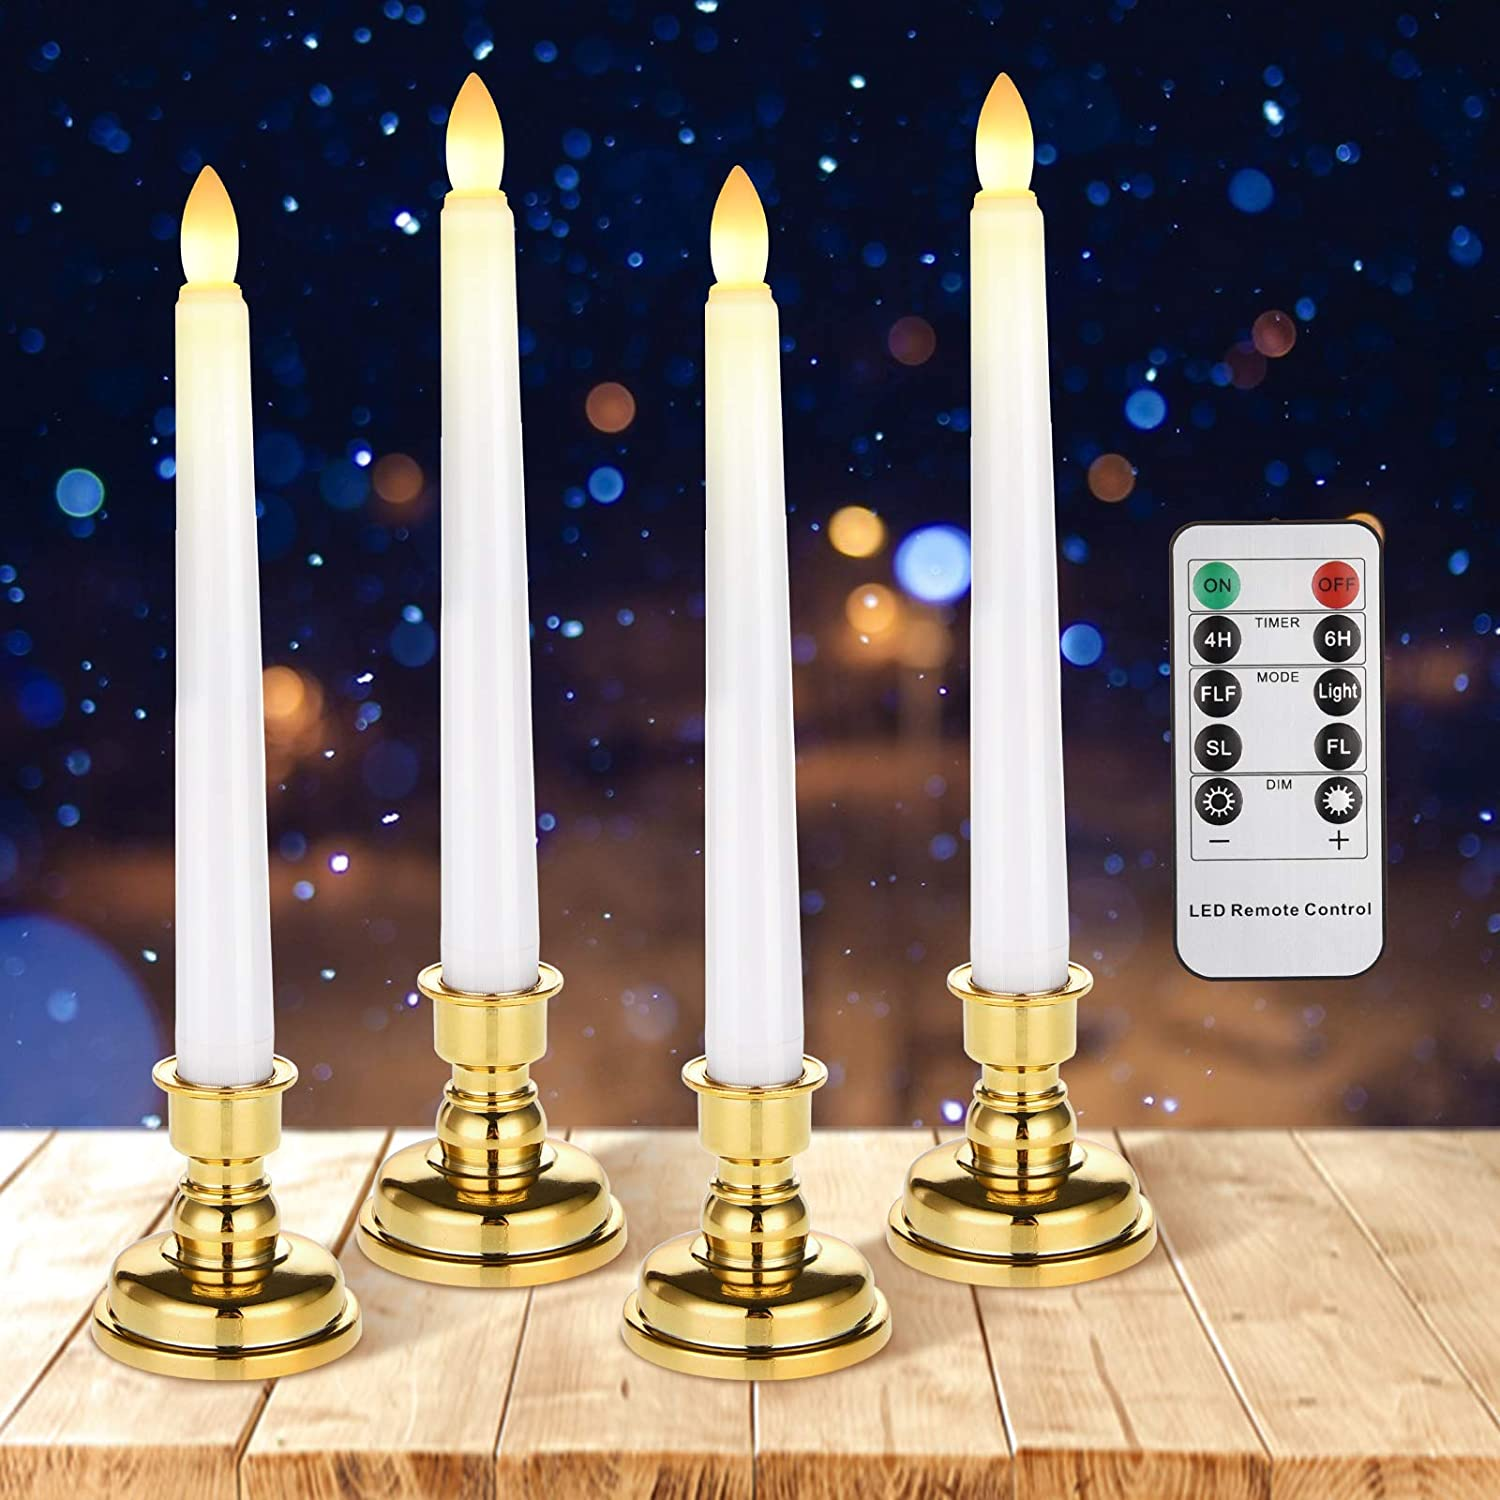 Flameless Taper Candles, Cimetech Battery Operated LED Candle Light with Remote Timer for Dinner Churches Table Weddings Birthday Party Decor(Pack of 4)